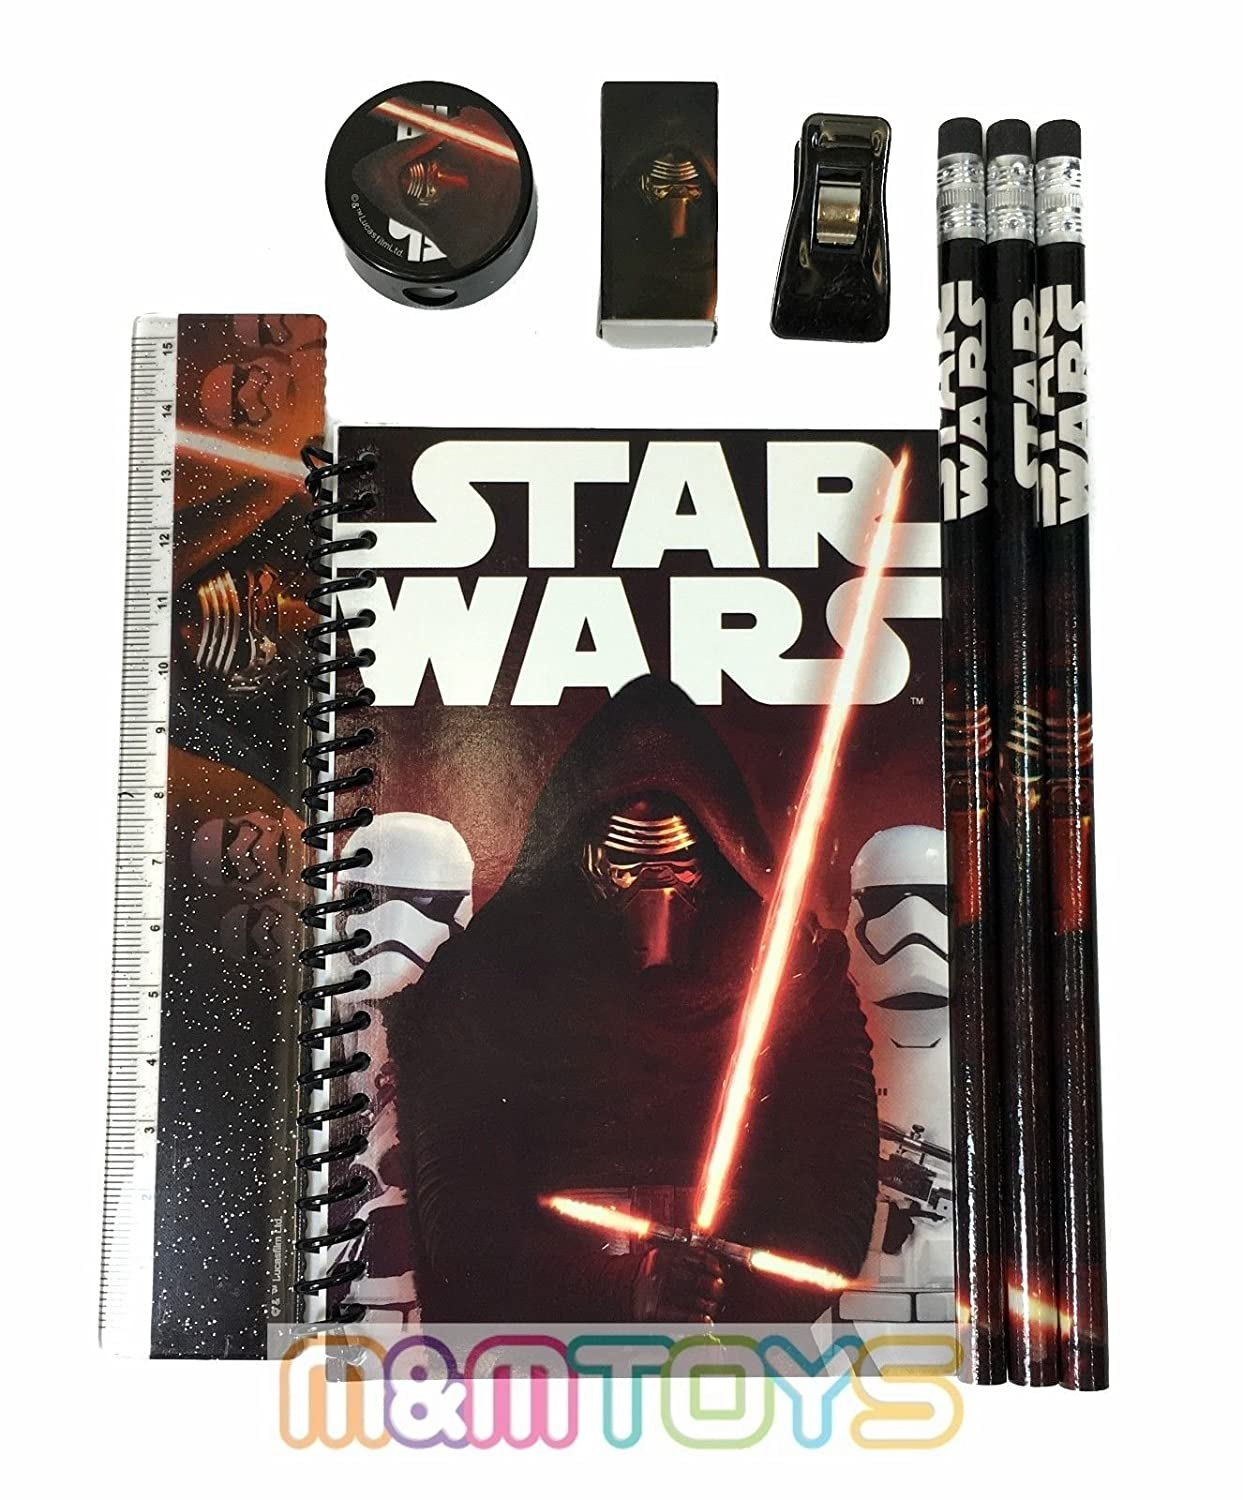 Black Disney Star Wars The Force Awaken Kylos Ren Stationary Kit